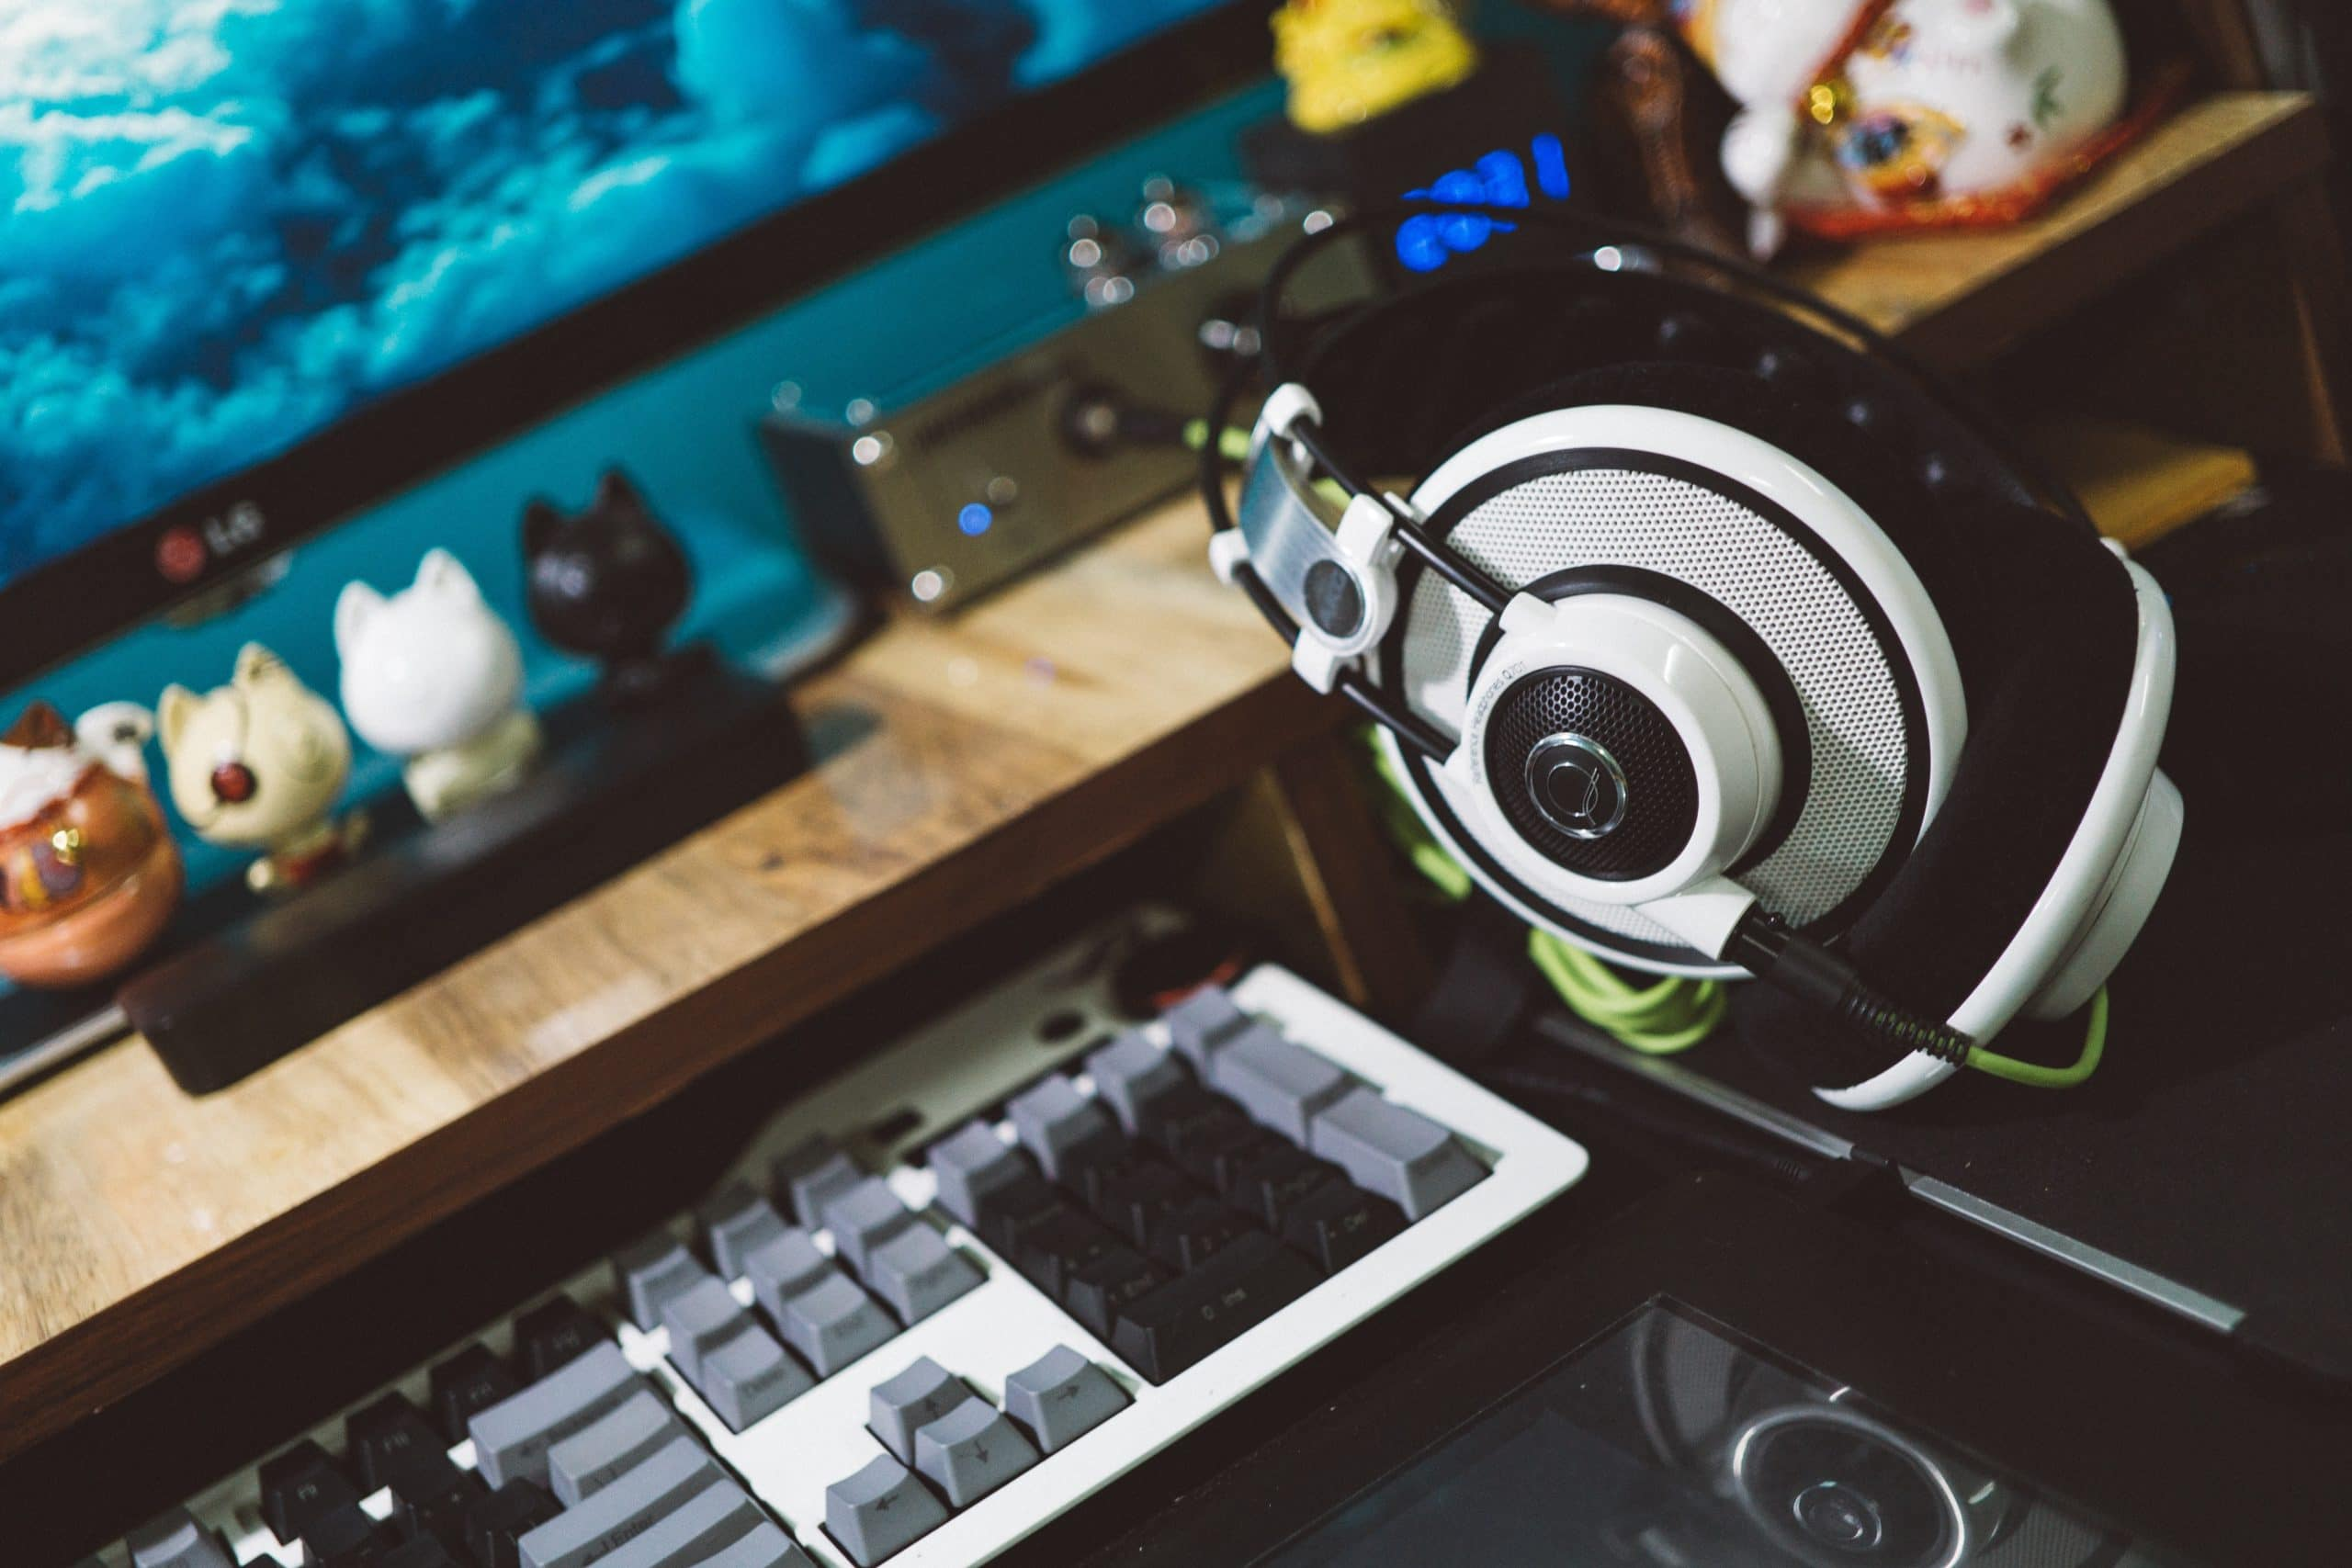 Best gaming headsets under 100 dollars [Top 3]